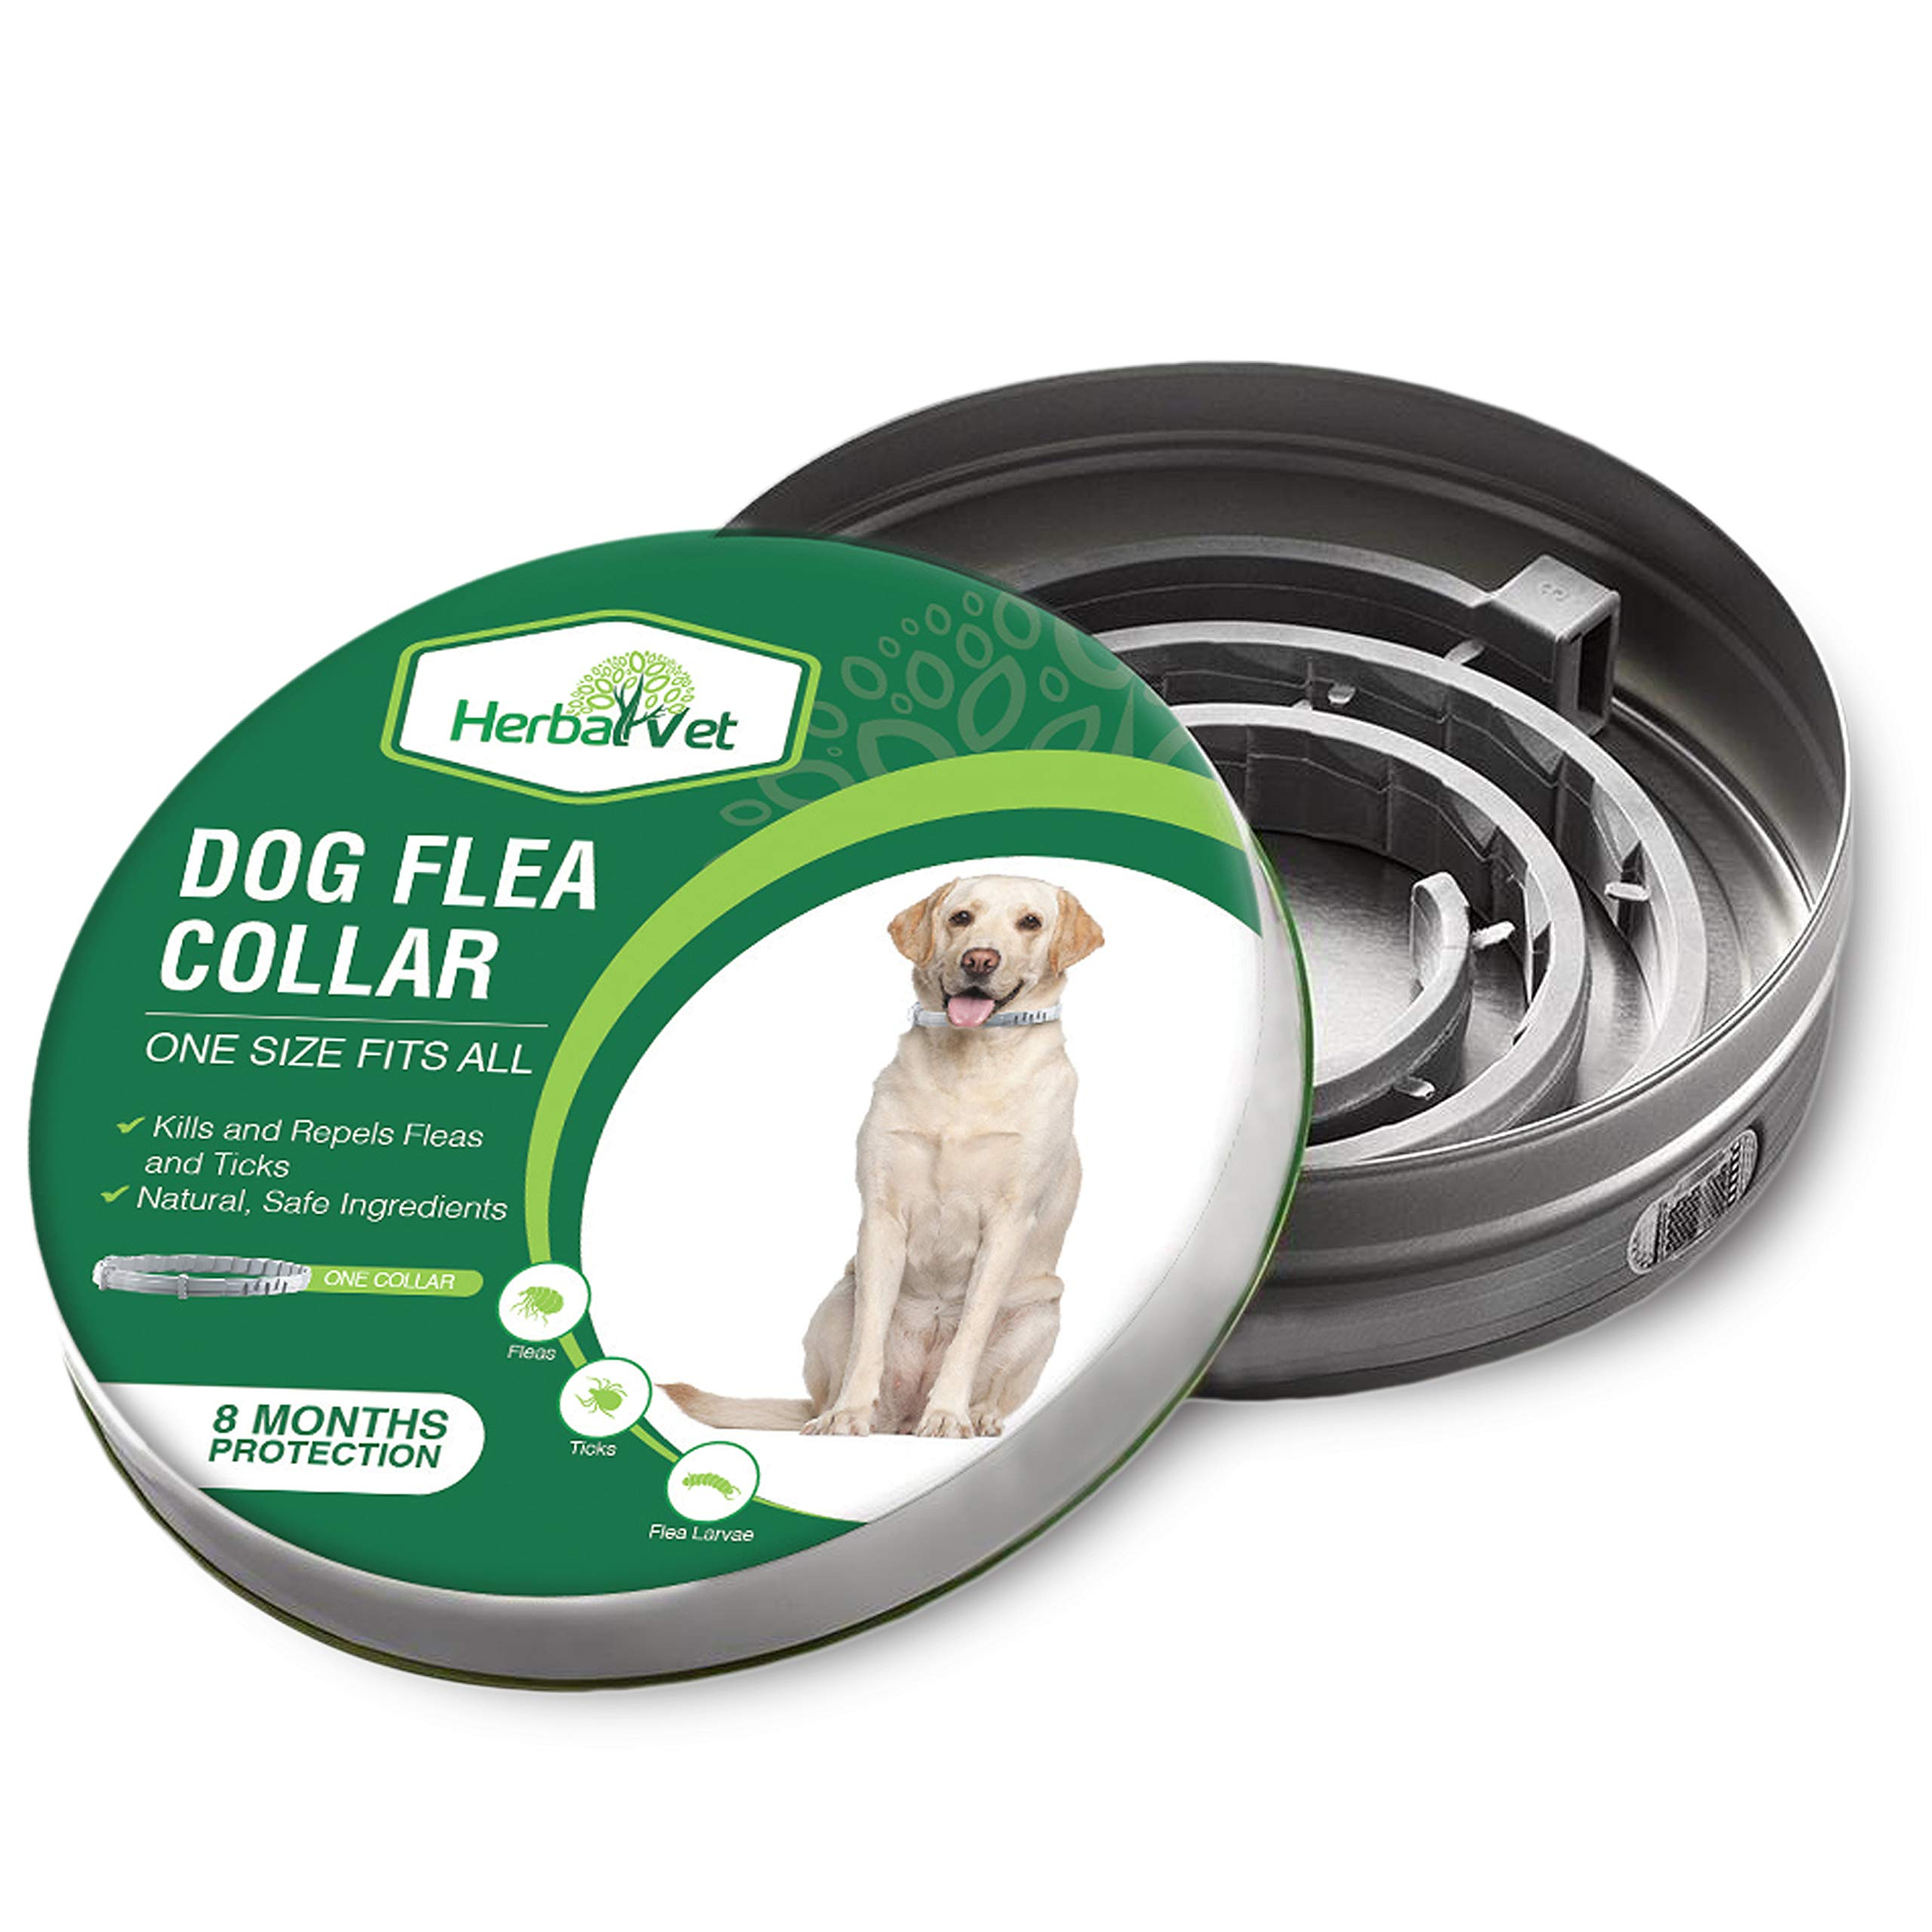 HerbalVet Dog Flea Collar for Flea and Tick Treatment and Prevention for Dogs| One Size Fits All, 100% Natural Oils, 100% Waterproof, 8 Month Essential Oil Flea Collar | Helpful E-Book Included by HerbalVet